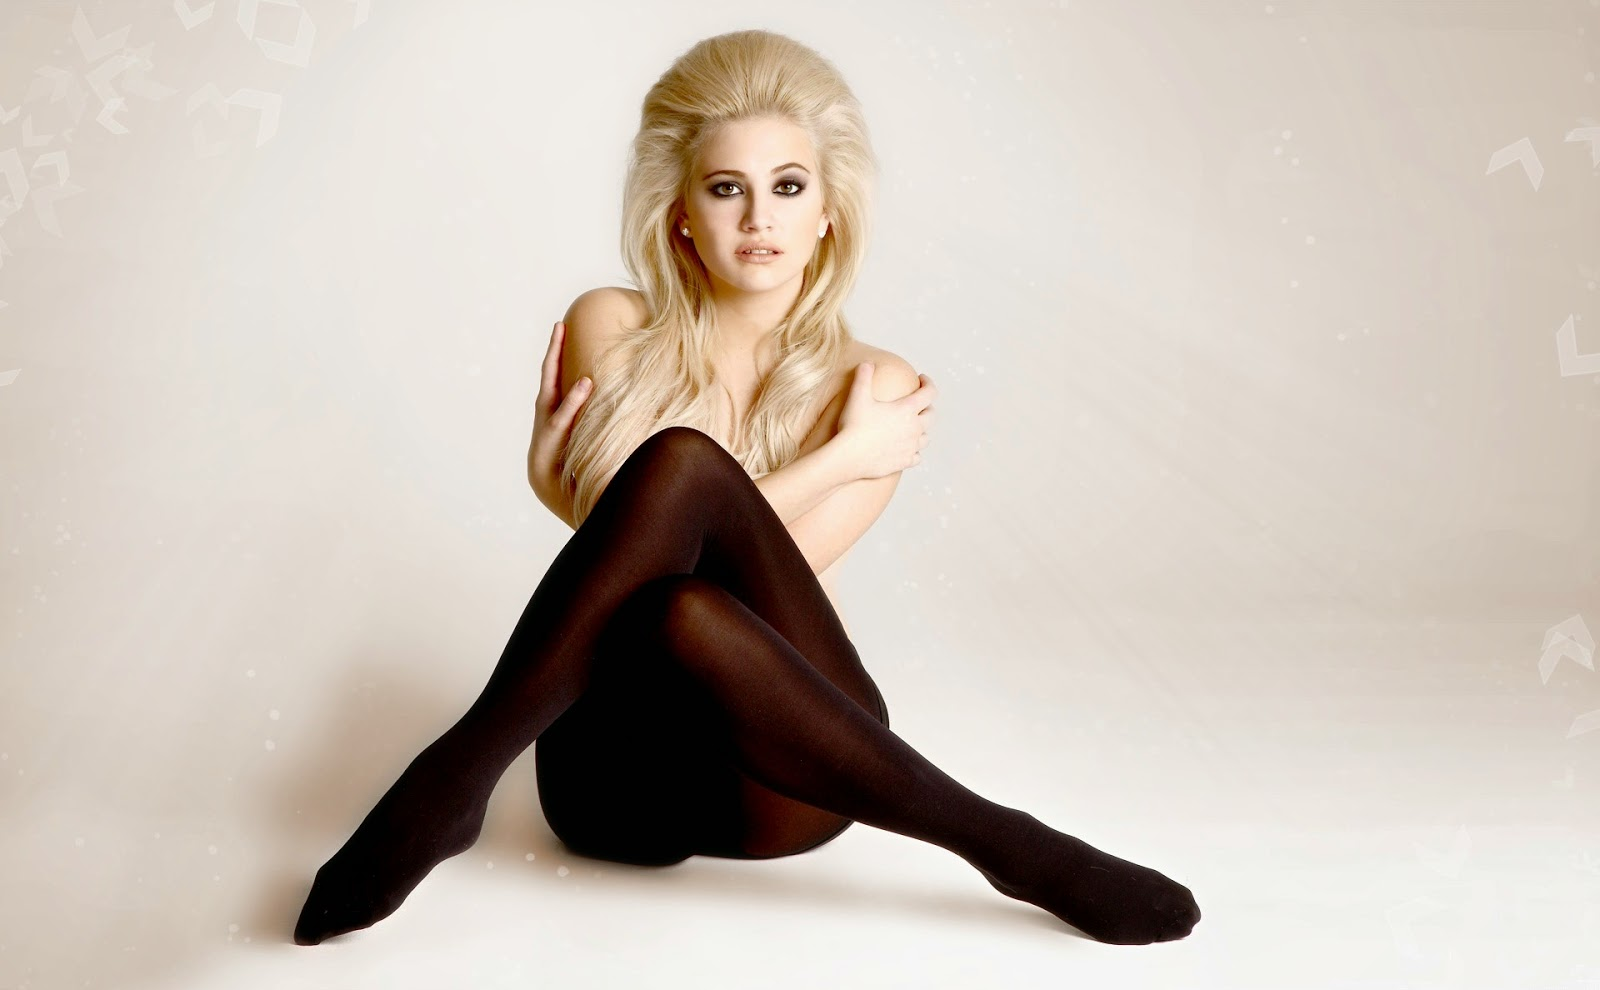 Hot Pixie Lott nudes (61 foto and video), Topless, Cleavage, Selfie, swimsuit 2015